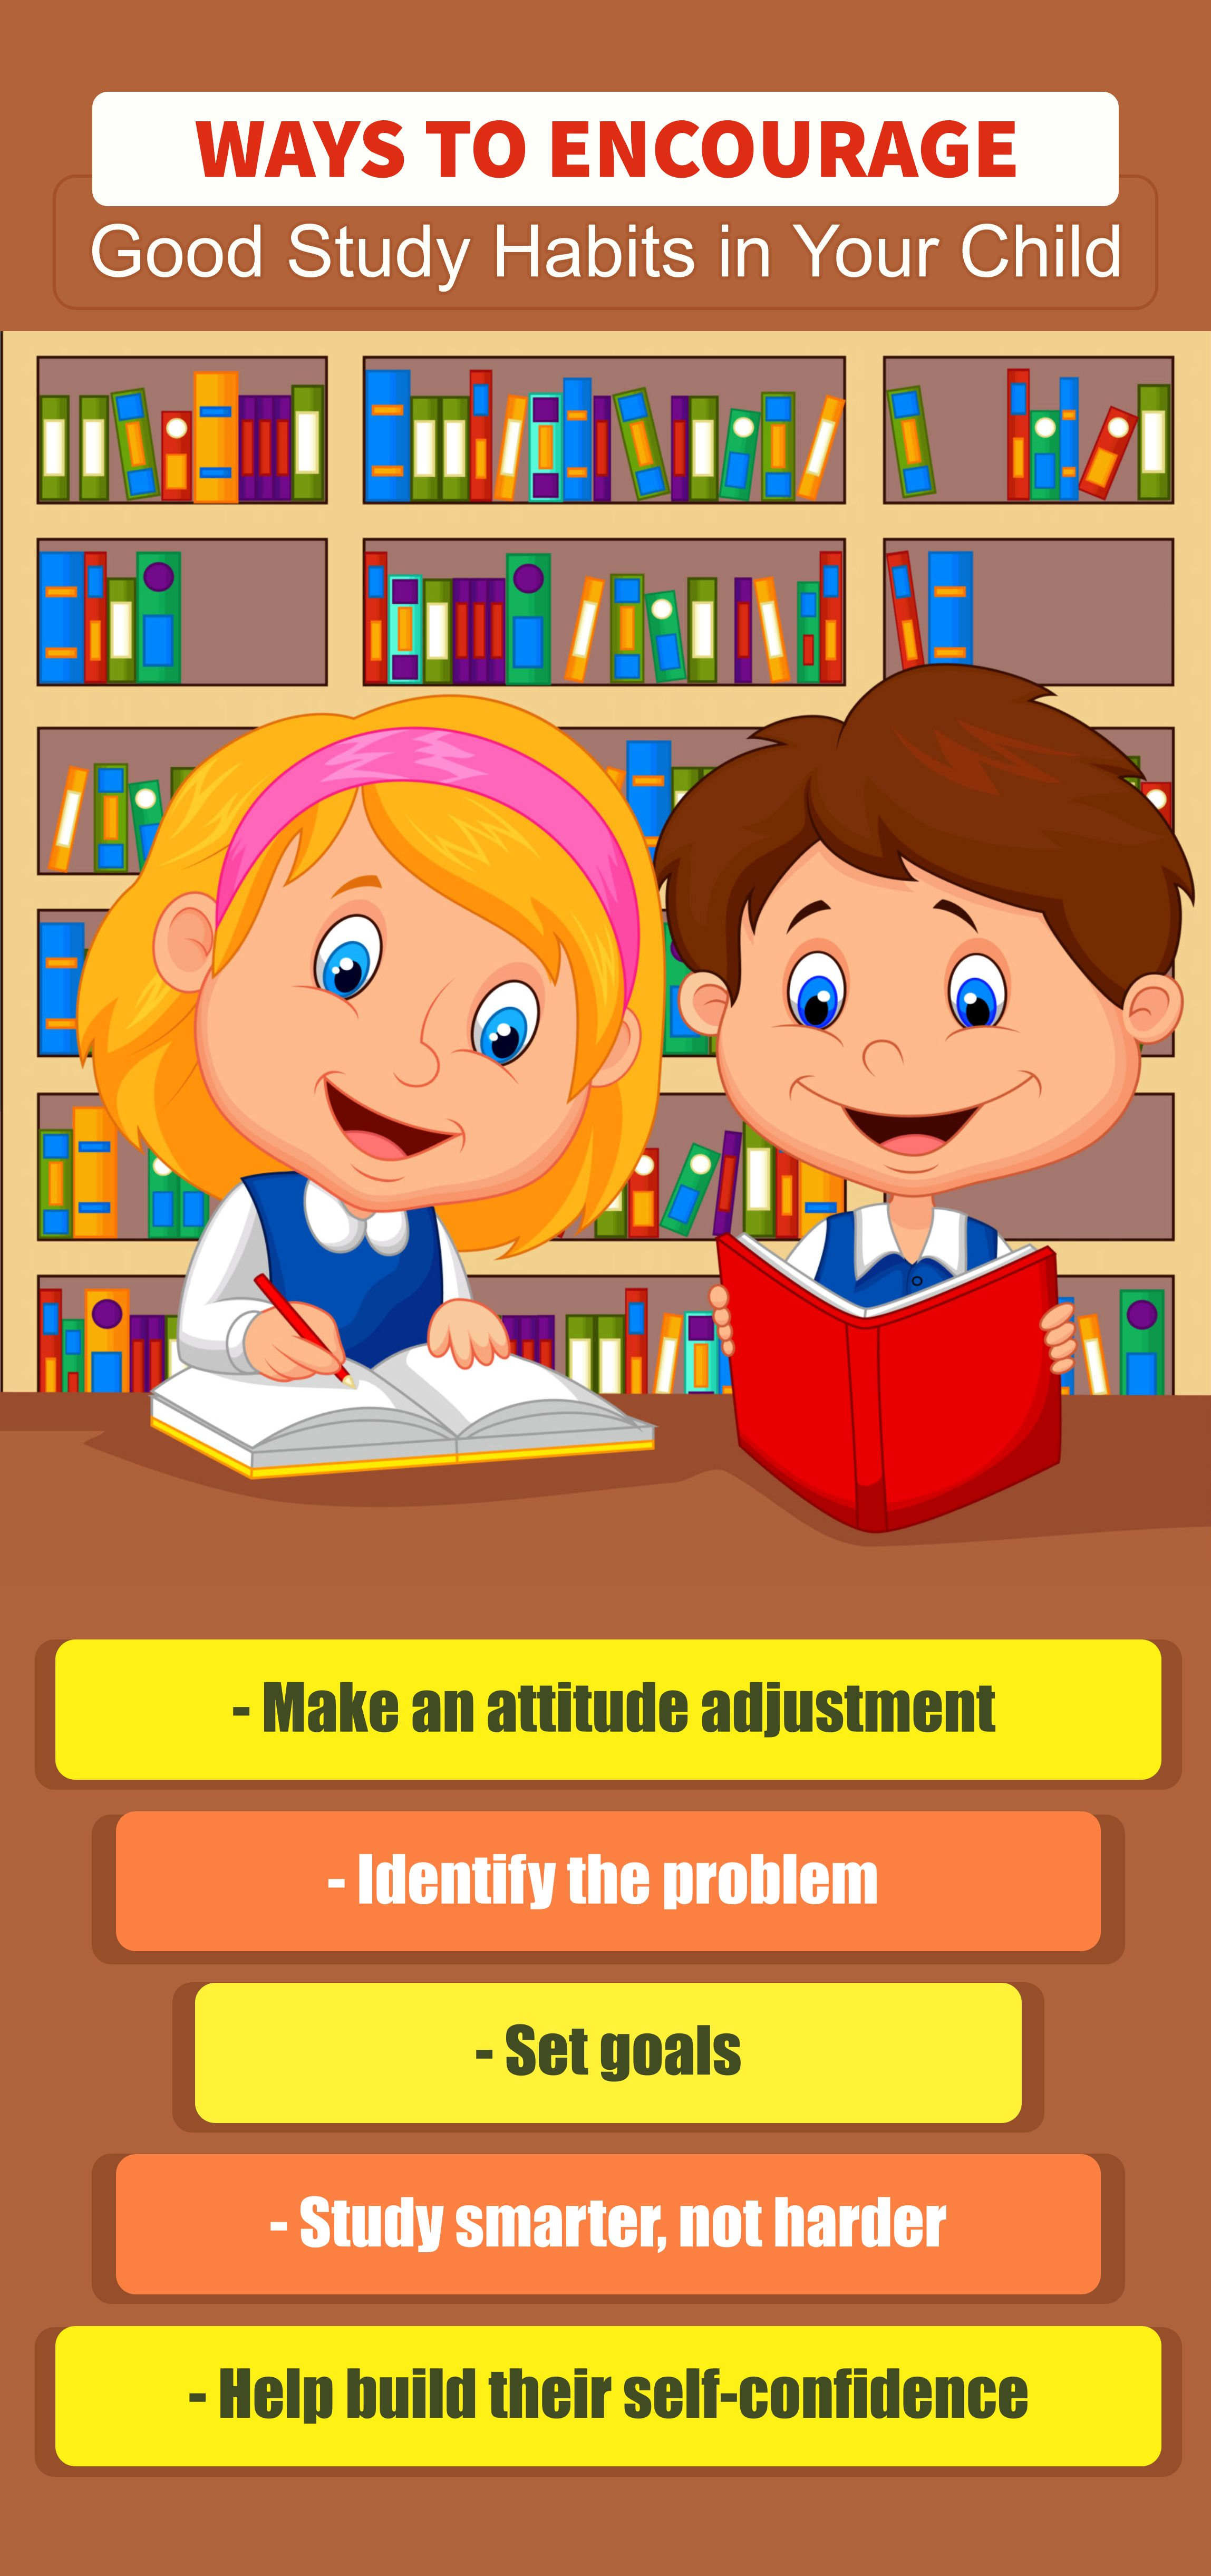 Watch How to Encourage Good Study Habits in a Child video